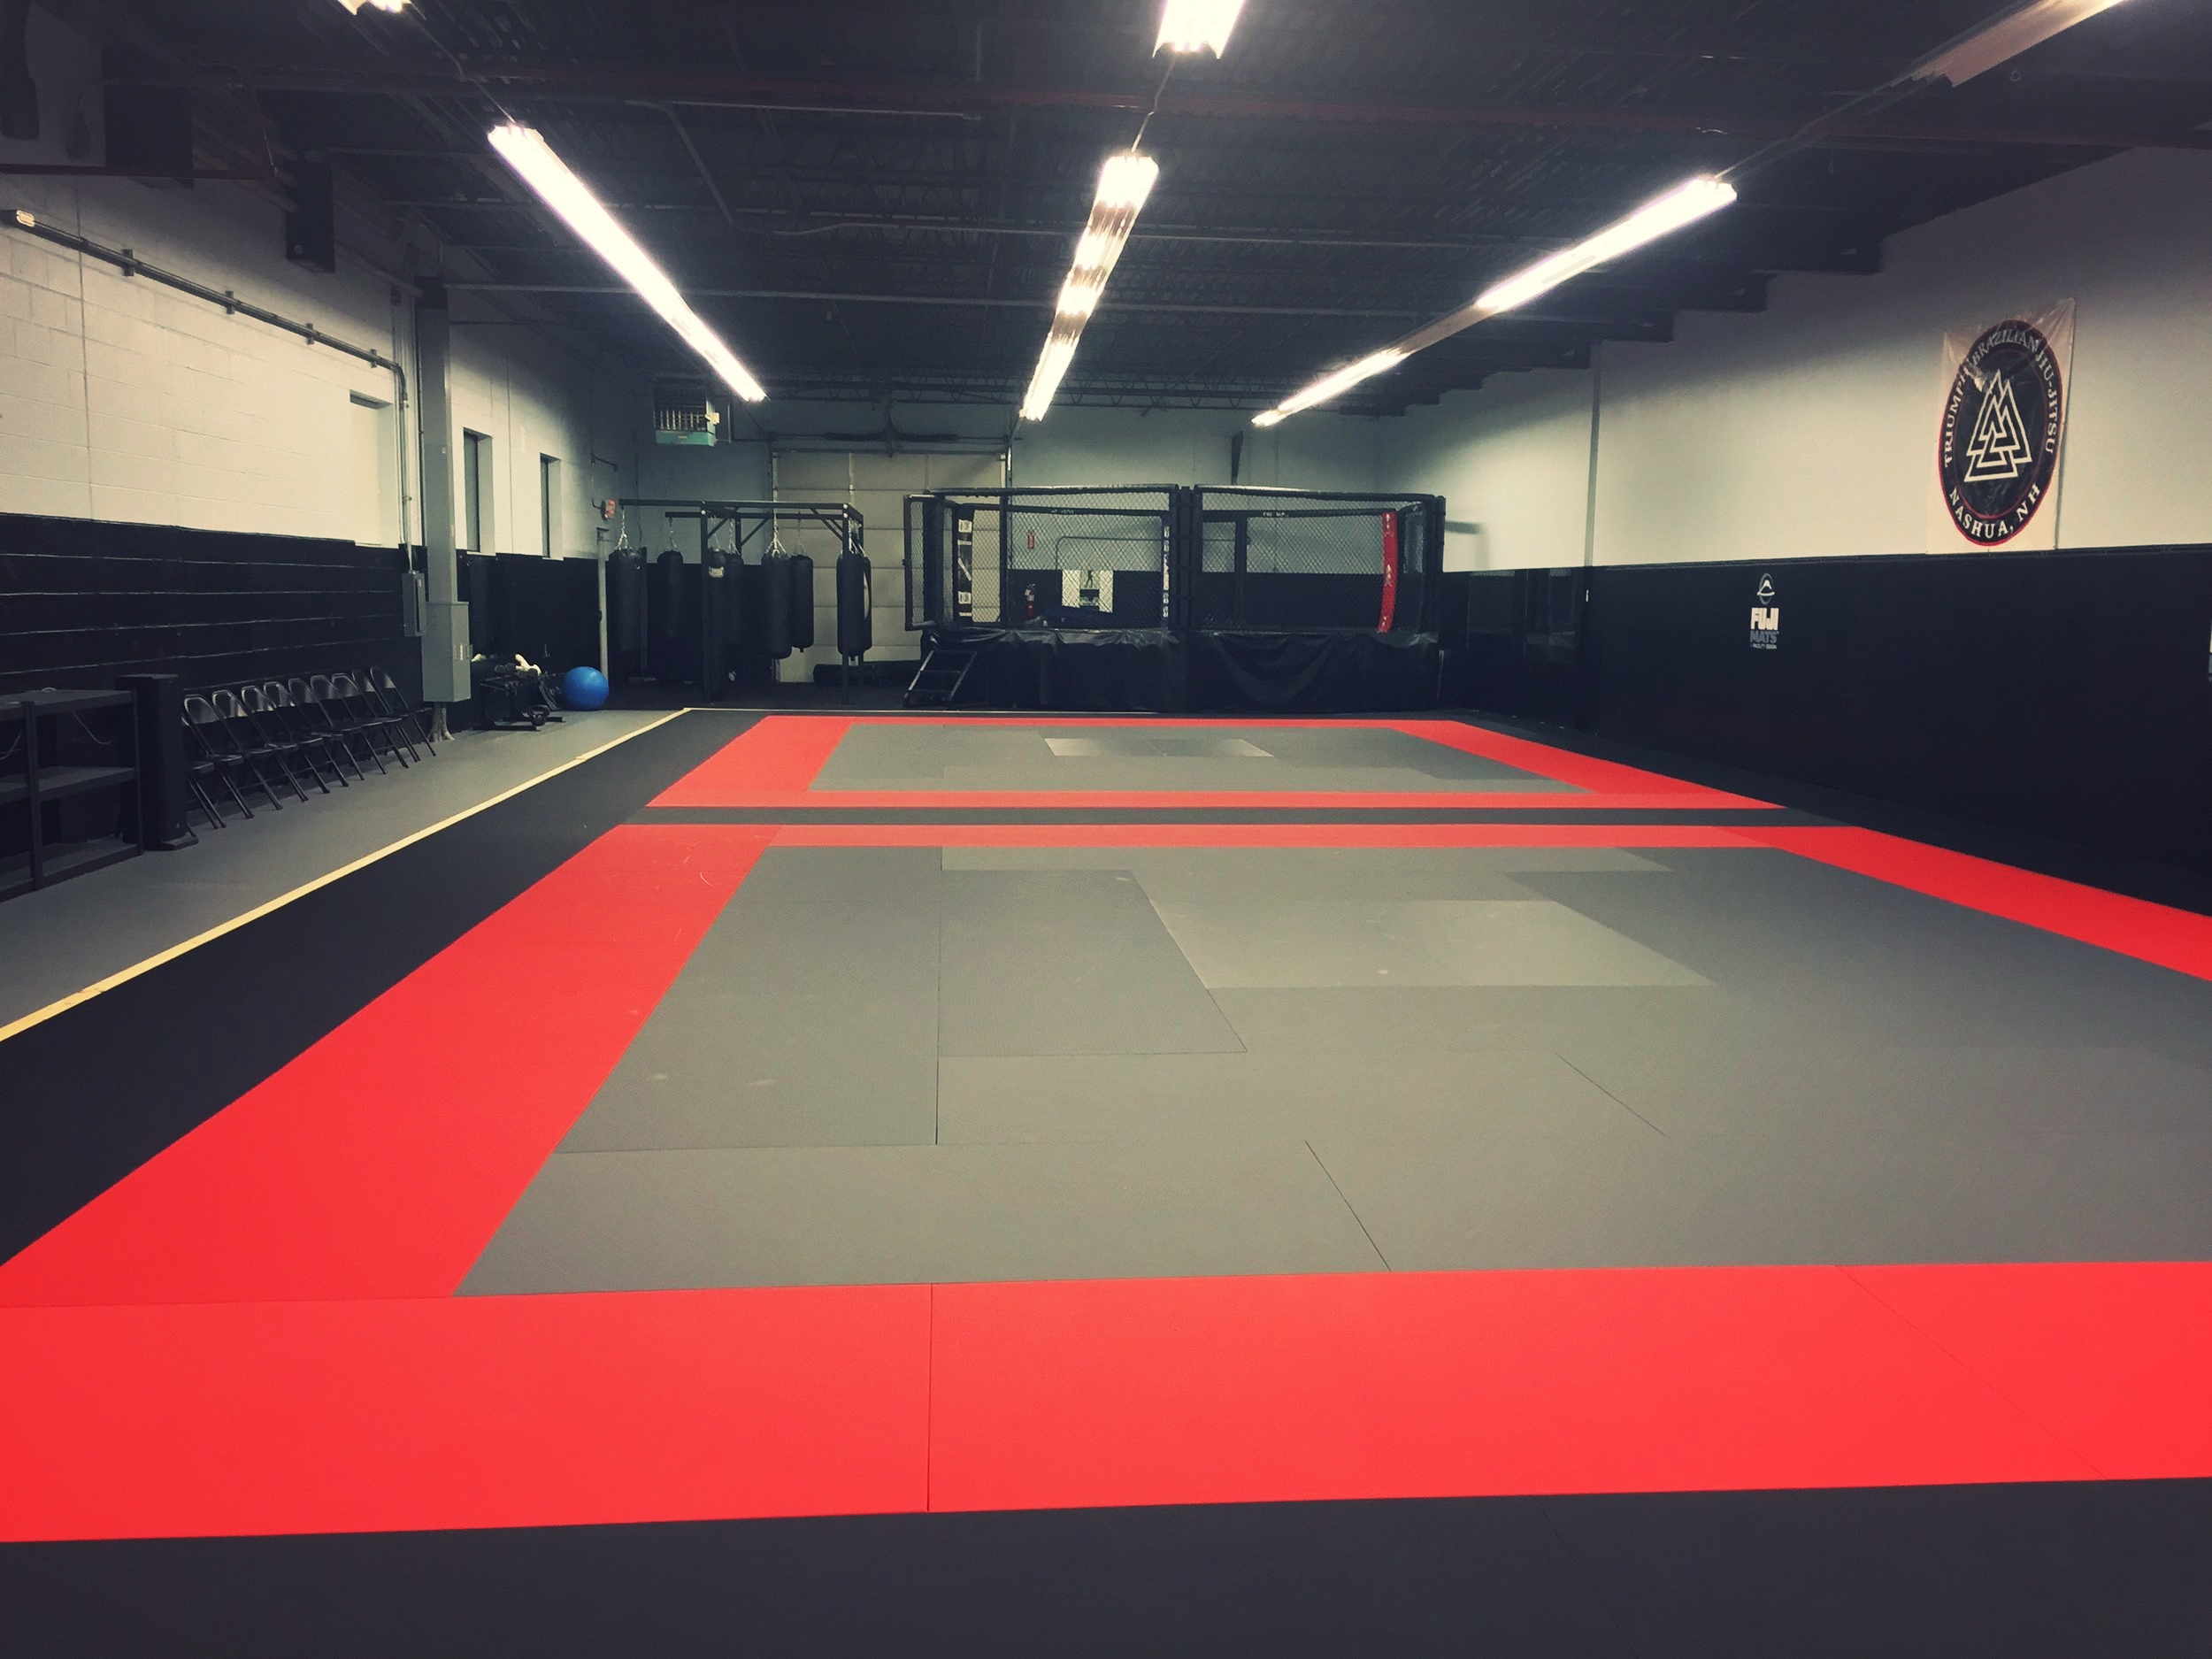 4,000 square feet of training space